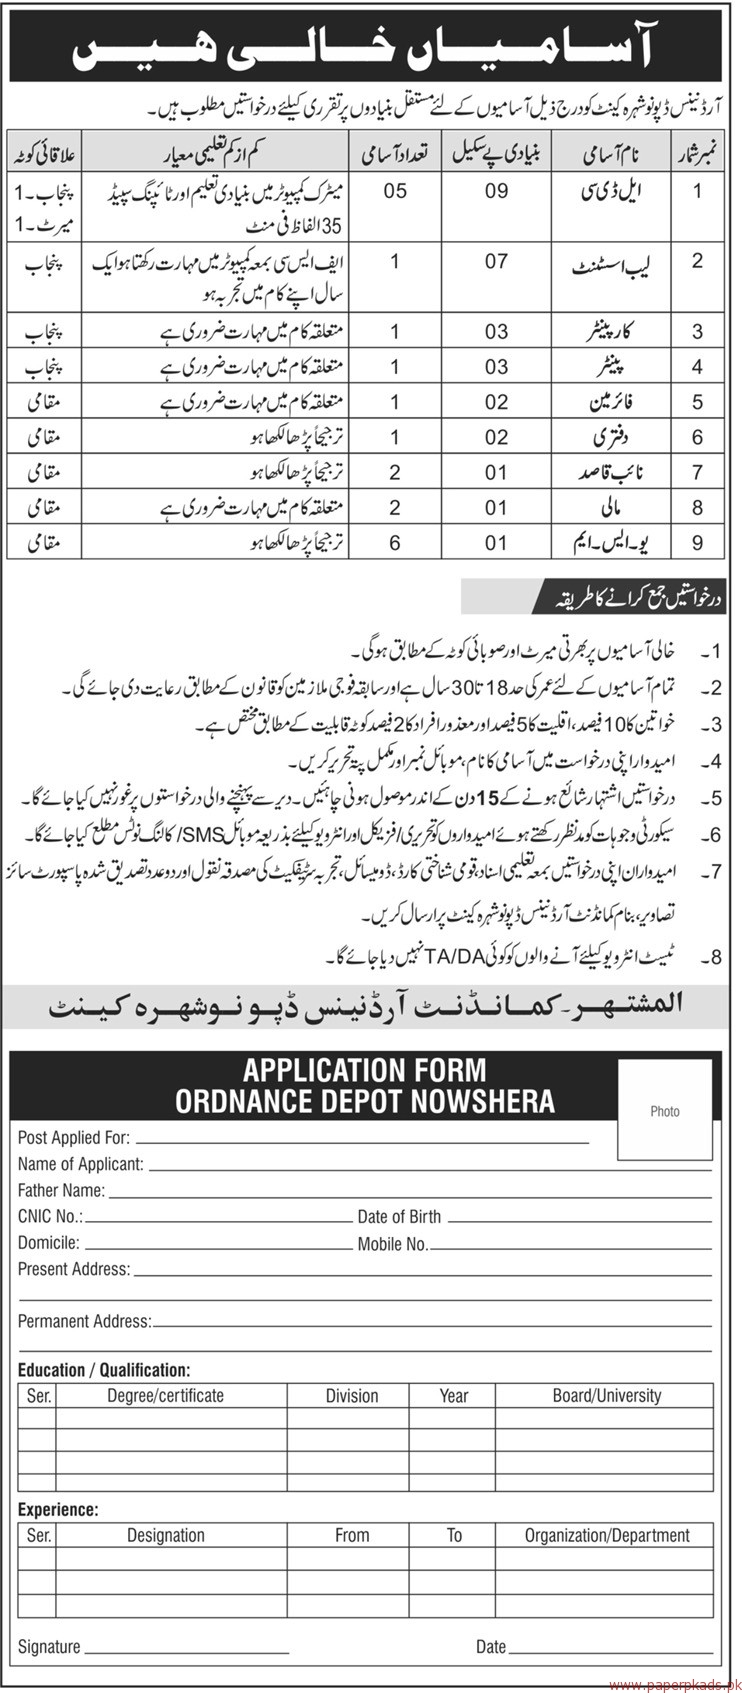 Ordinance Depot Nowshera Jobs 2017